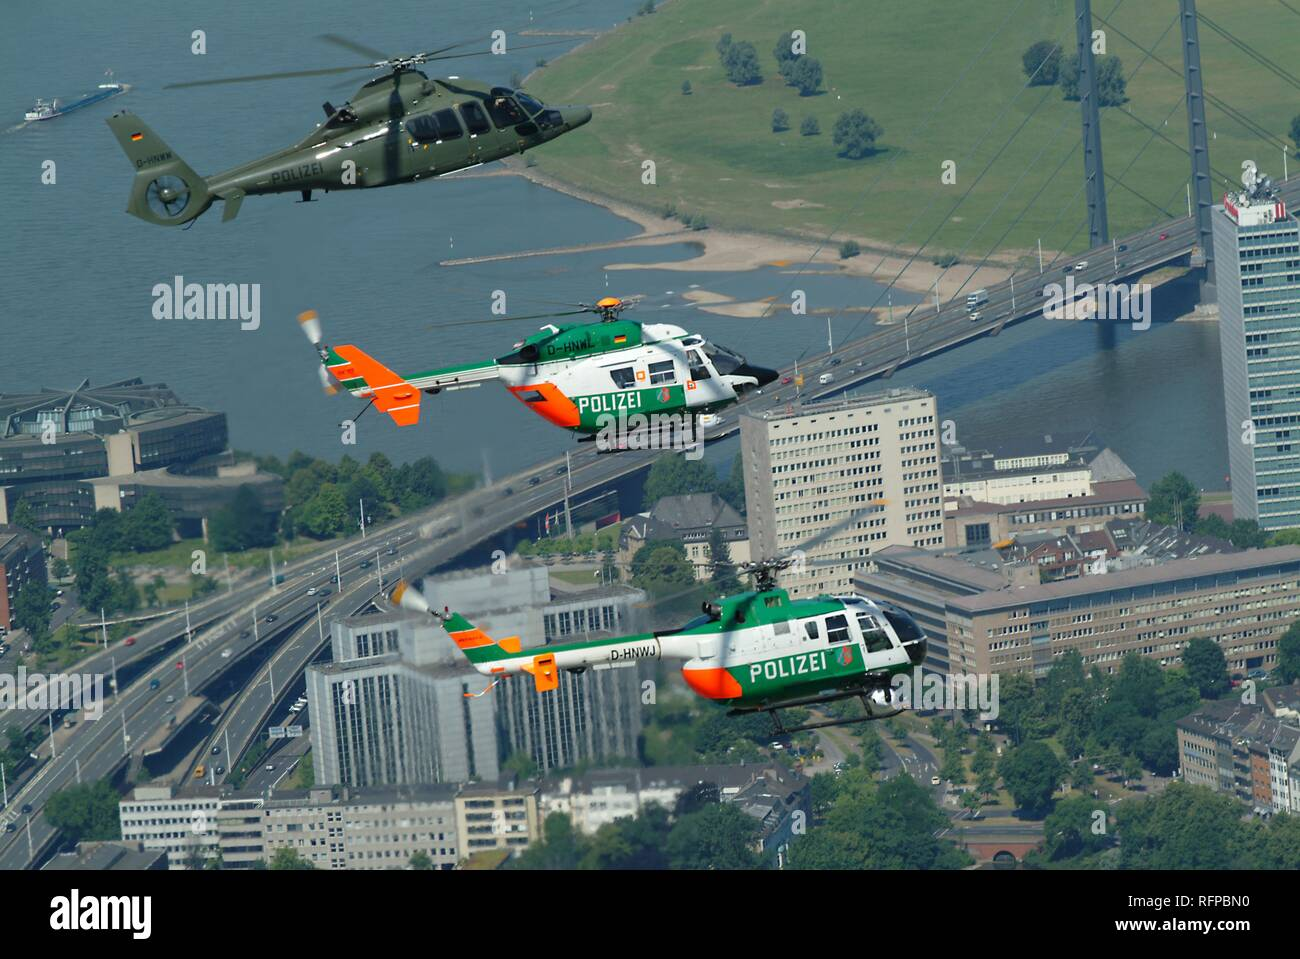 DEU, Germany, Duesseldorf: Police flying squad. Police helicopters.Top Eurocopter EC 155, middle BK 117, below MBB BO 105 - Stock Image